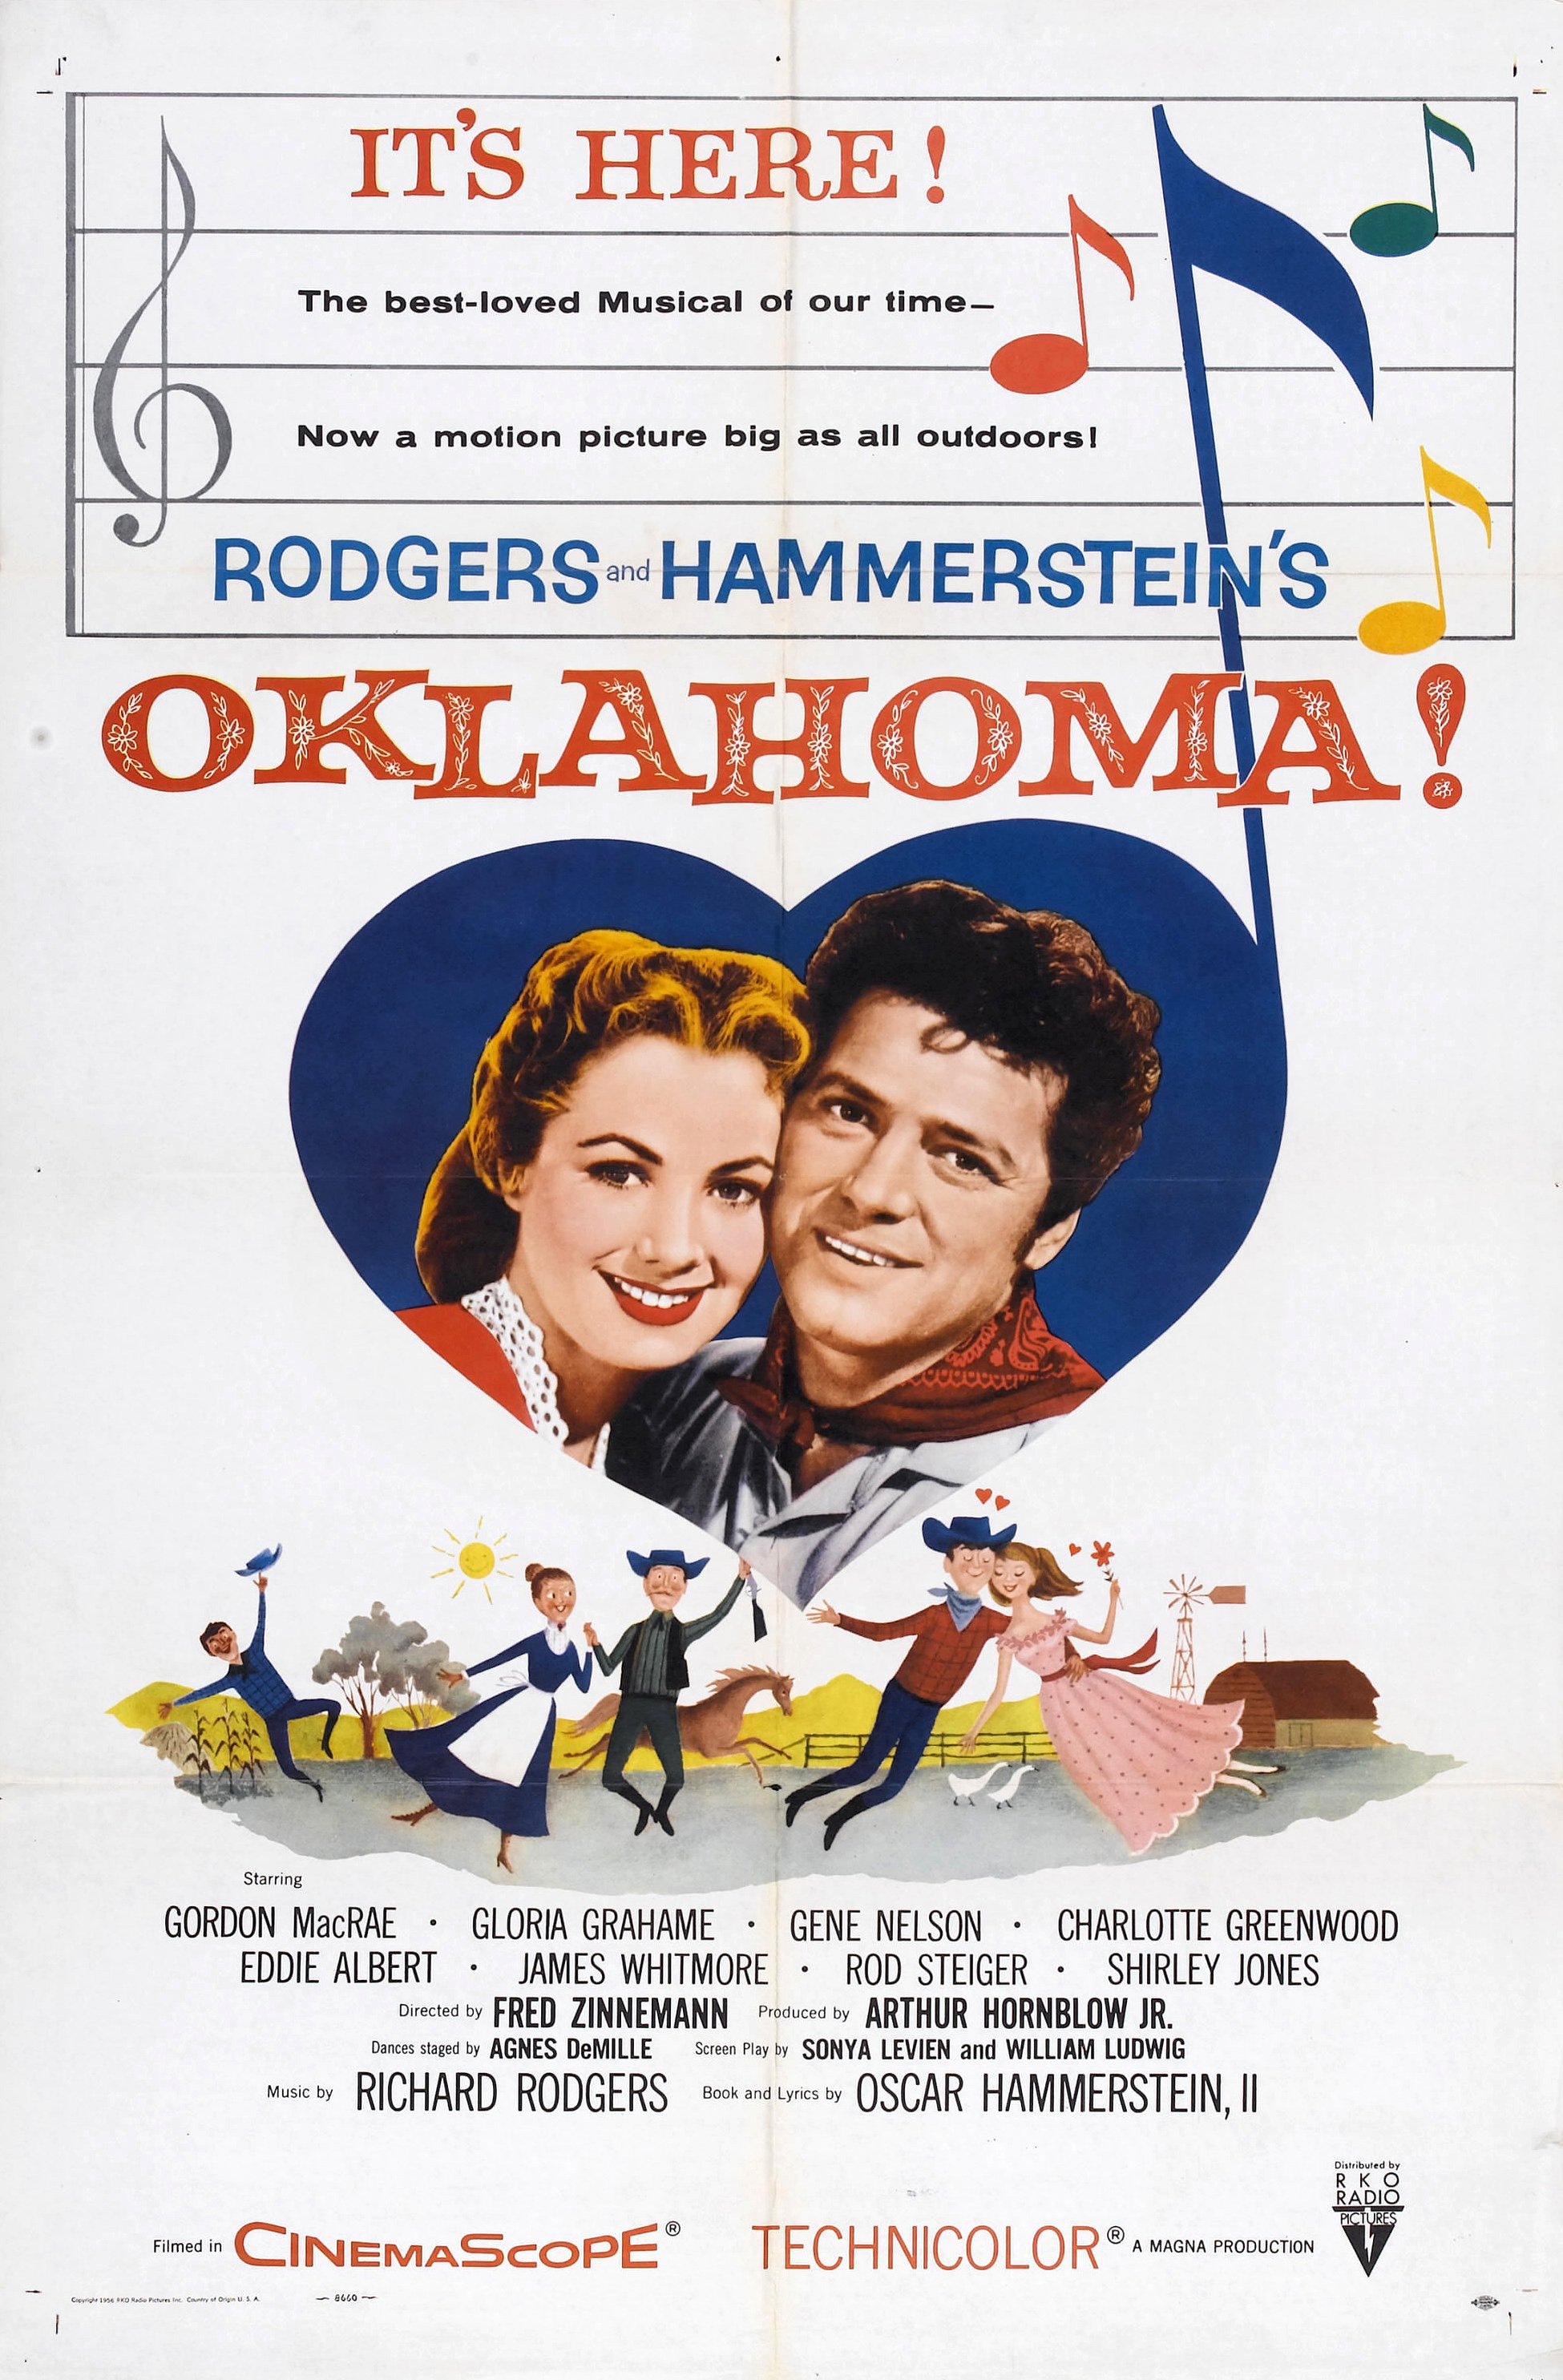 Oklahoma! Google image from https://www.doctormacro.com/Images/Posters/O/Poster%20-%20Oklahoma_01%20-%20Original%20Uncleaned.jpg